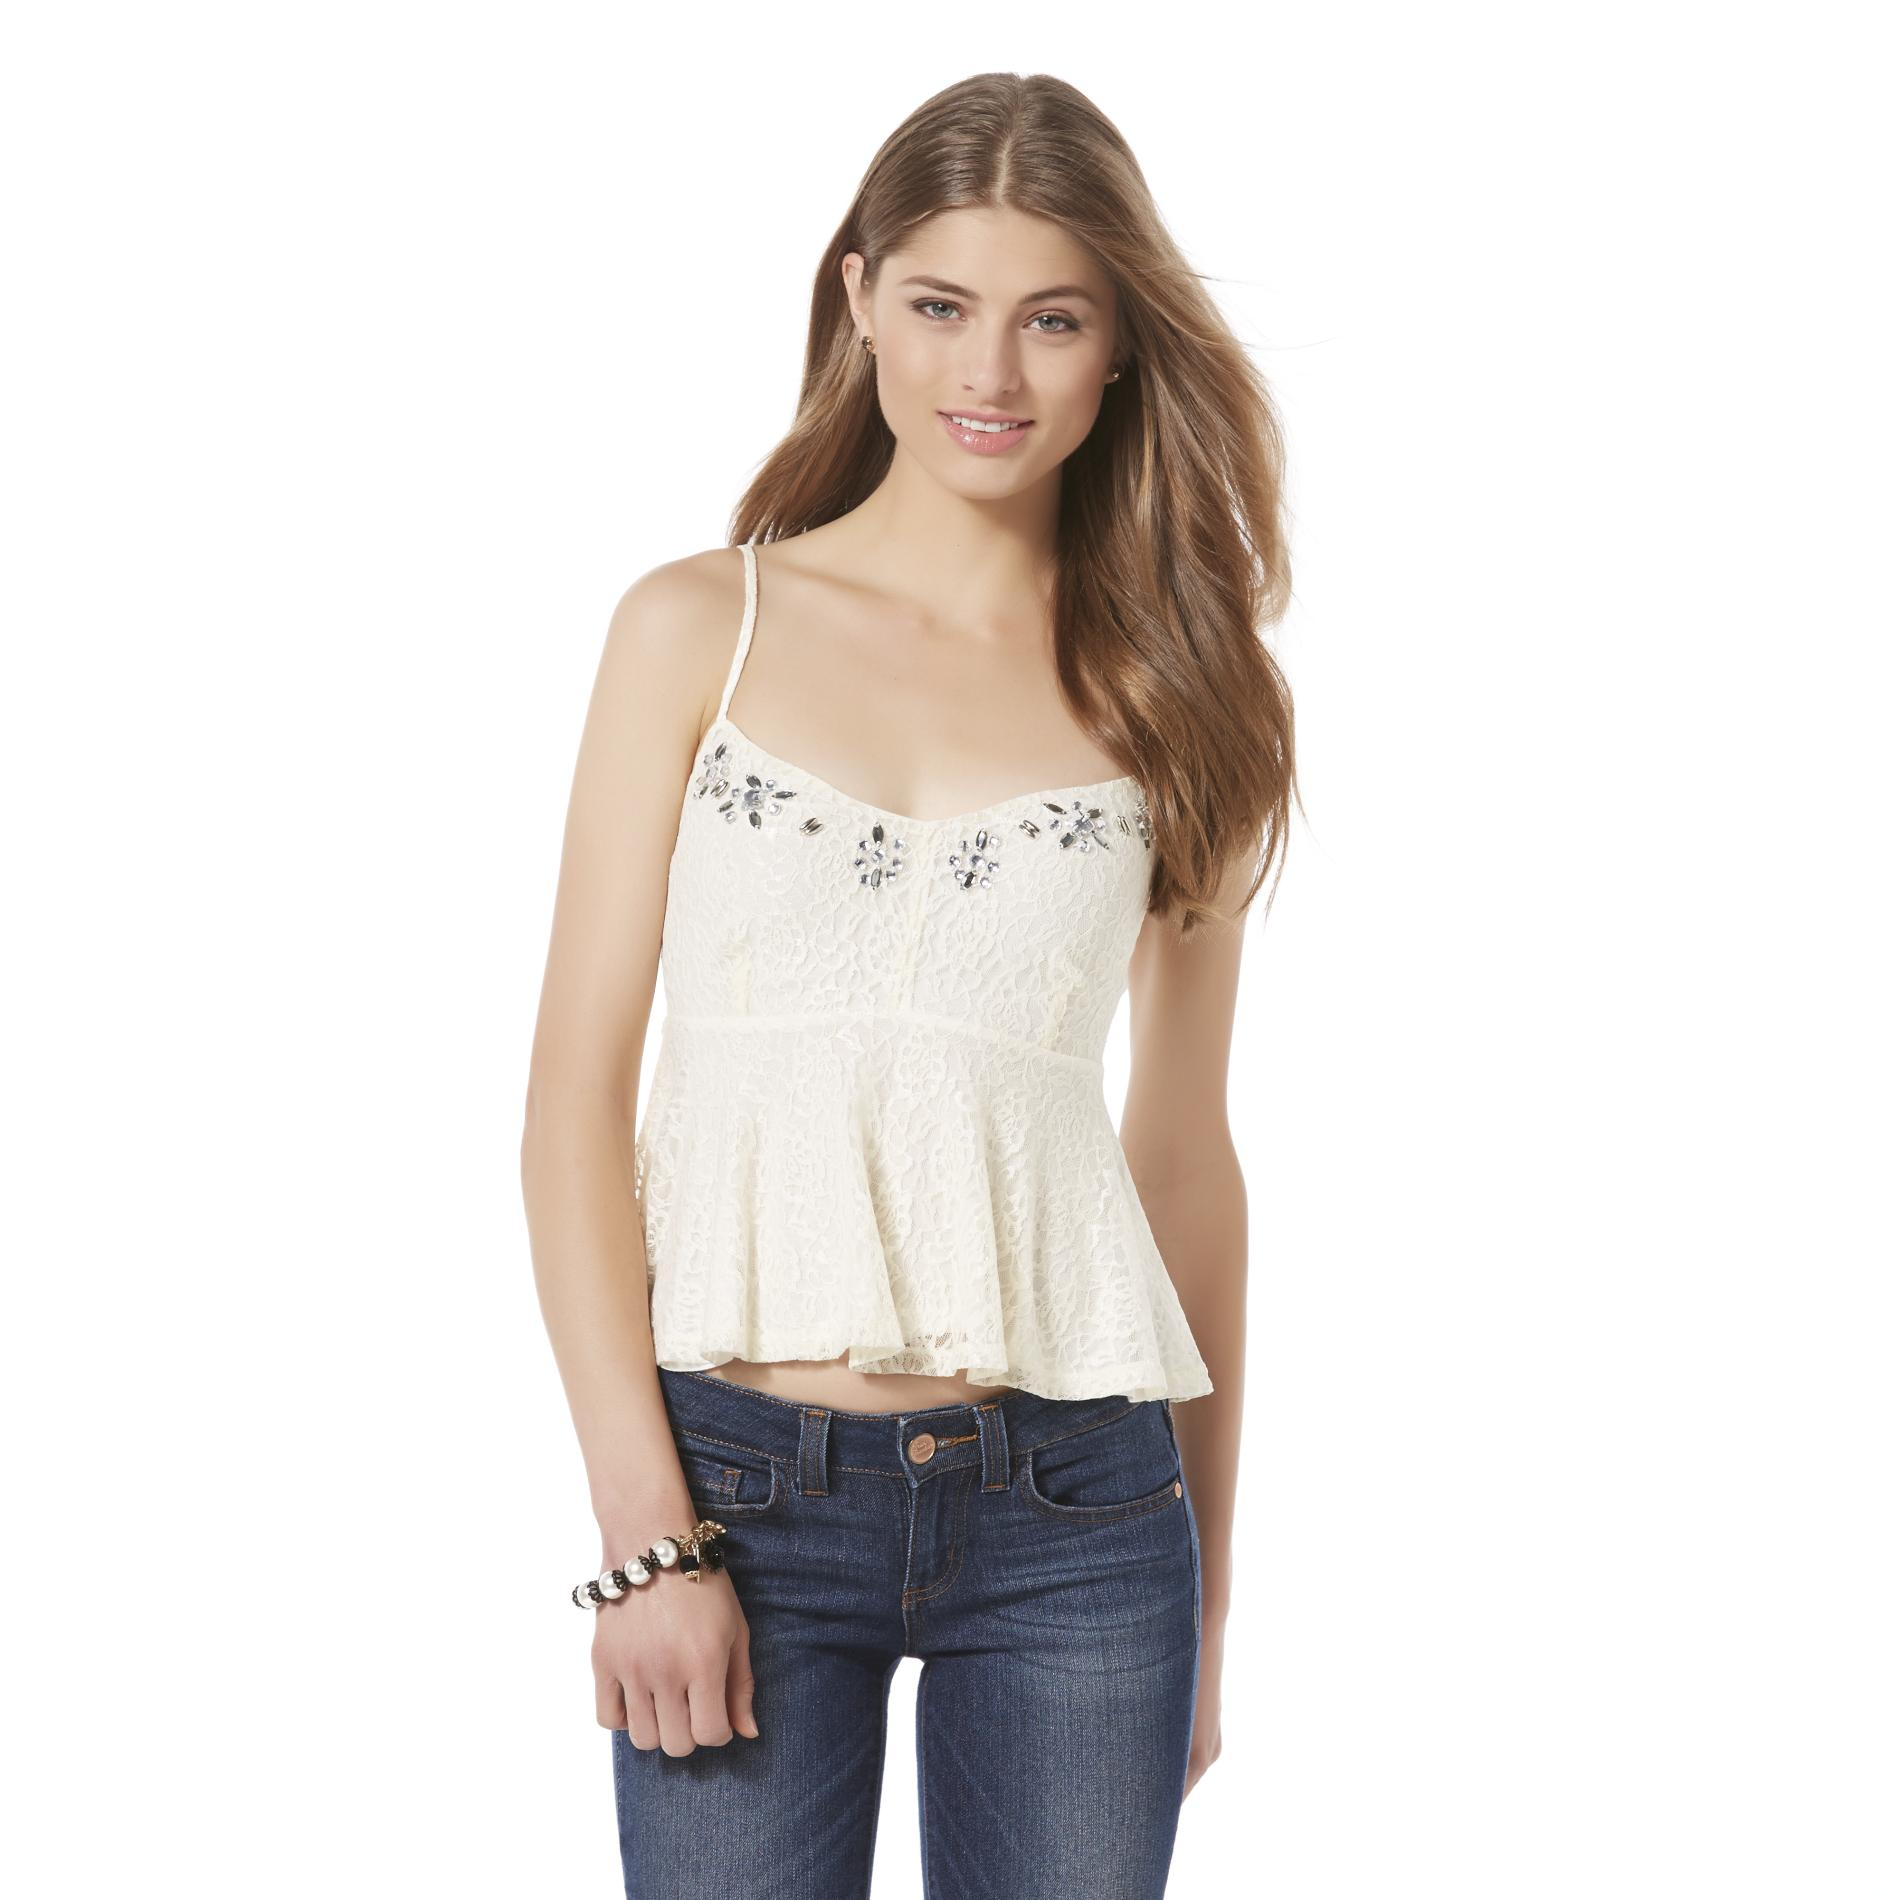 Find lace tops for juniors at ShopStyle. Shop the latest collection of lace tops for juniors from the most popular stores - all in one place.